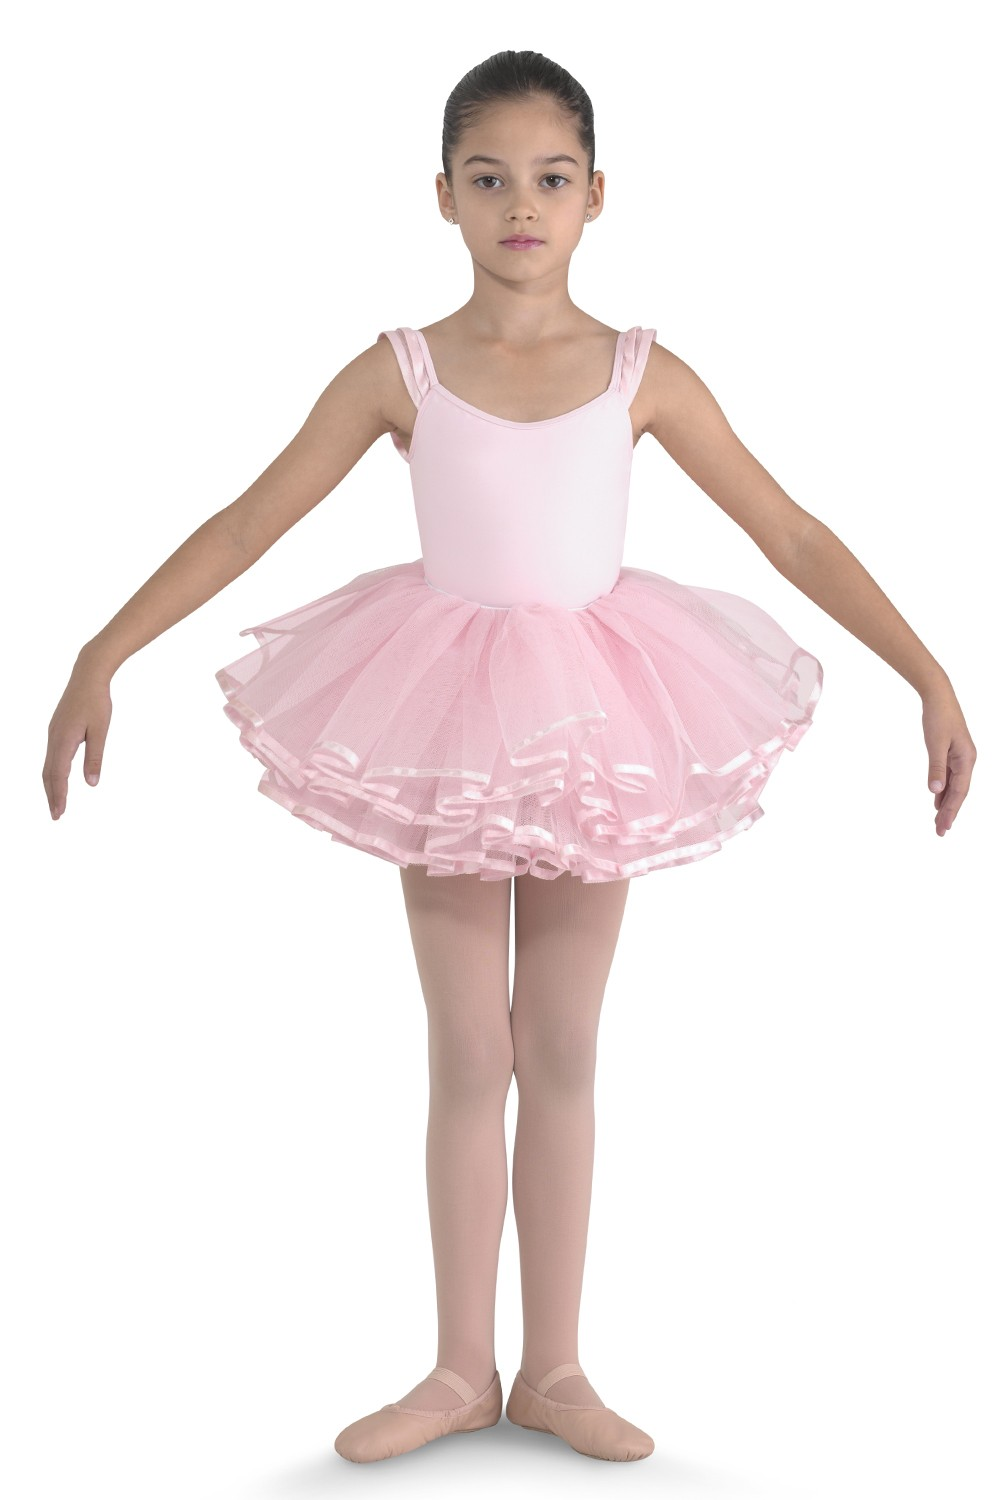 Ribbon Trim Tutu Children's Dance Skirts